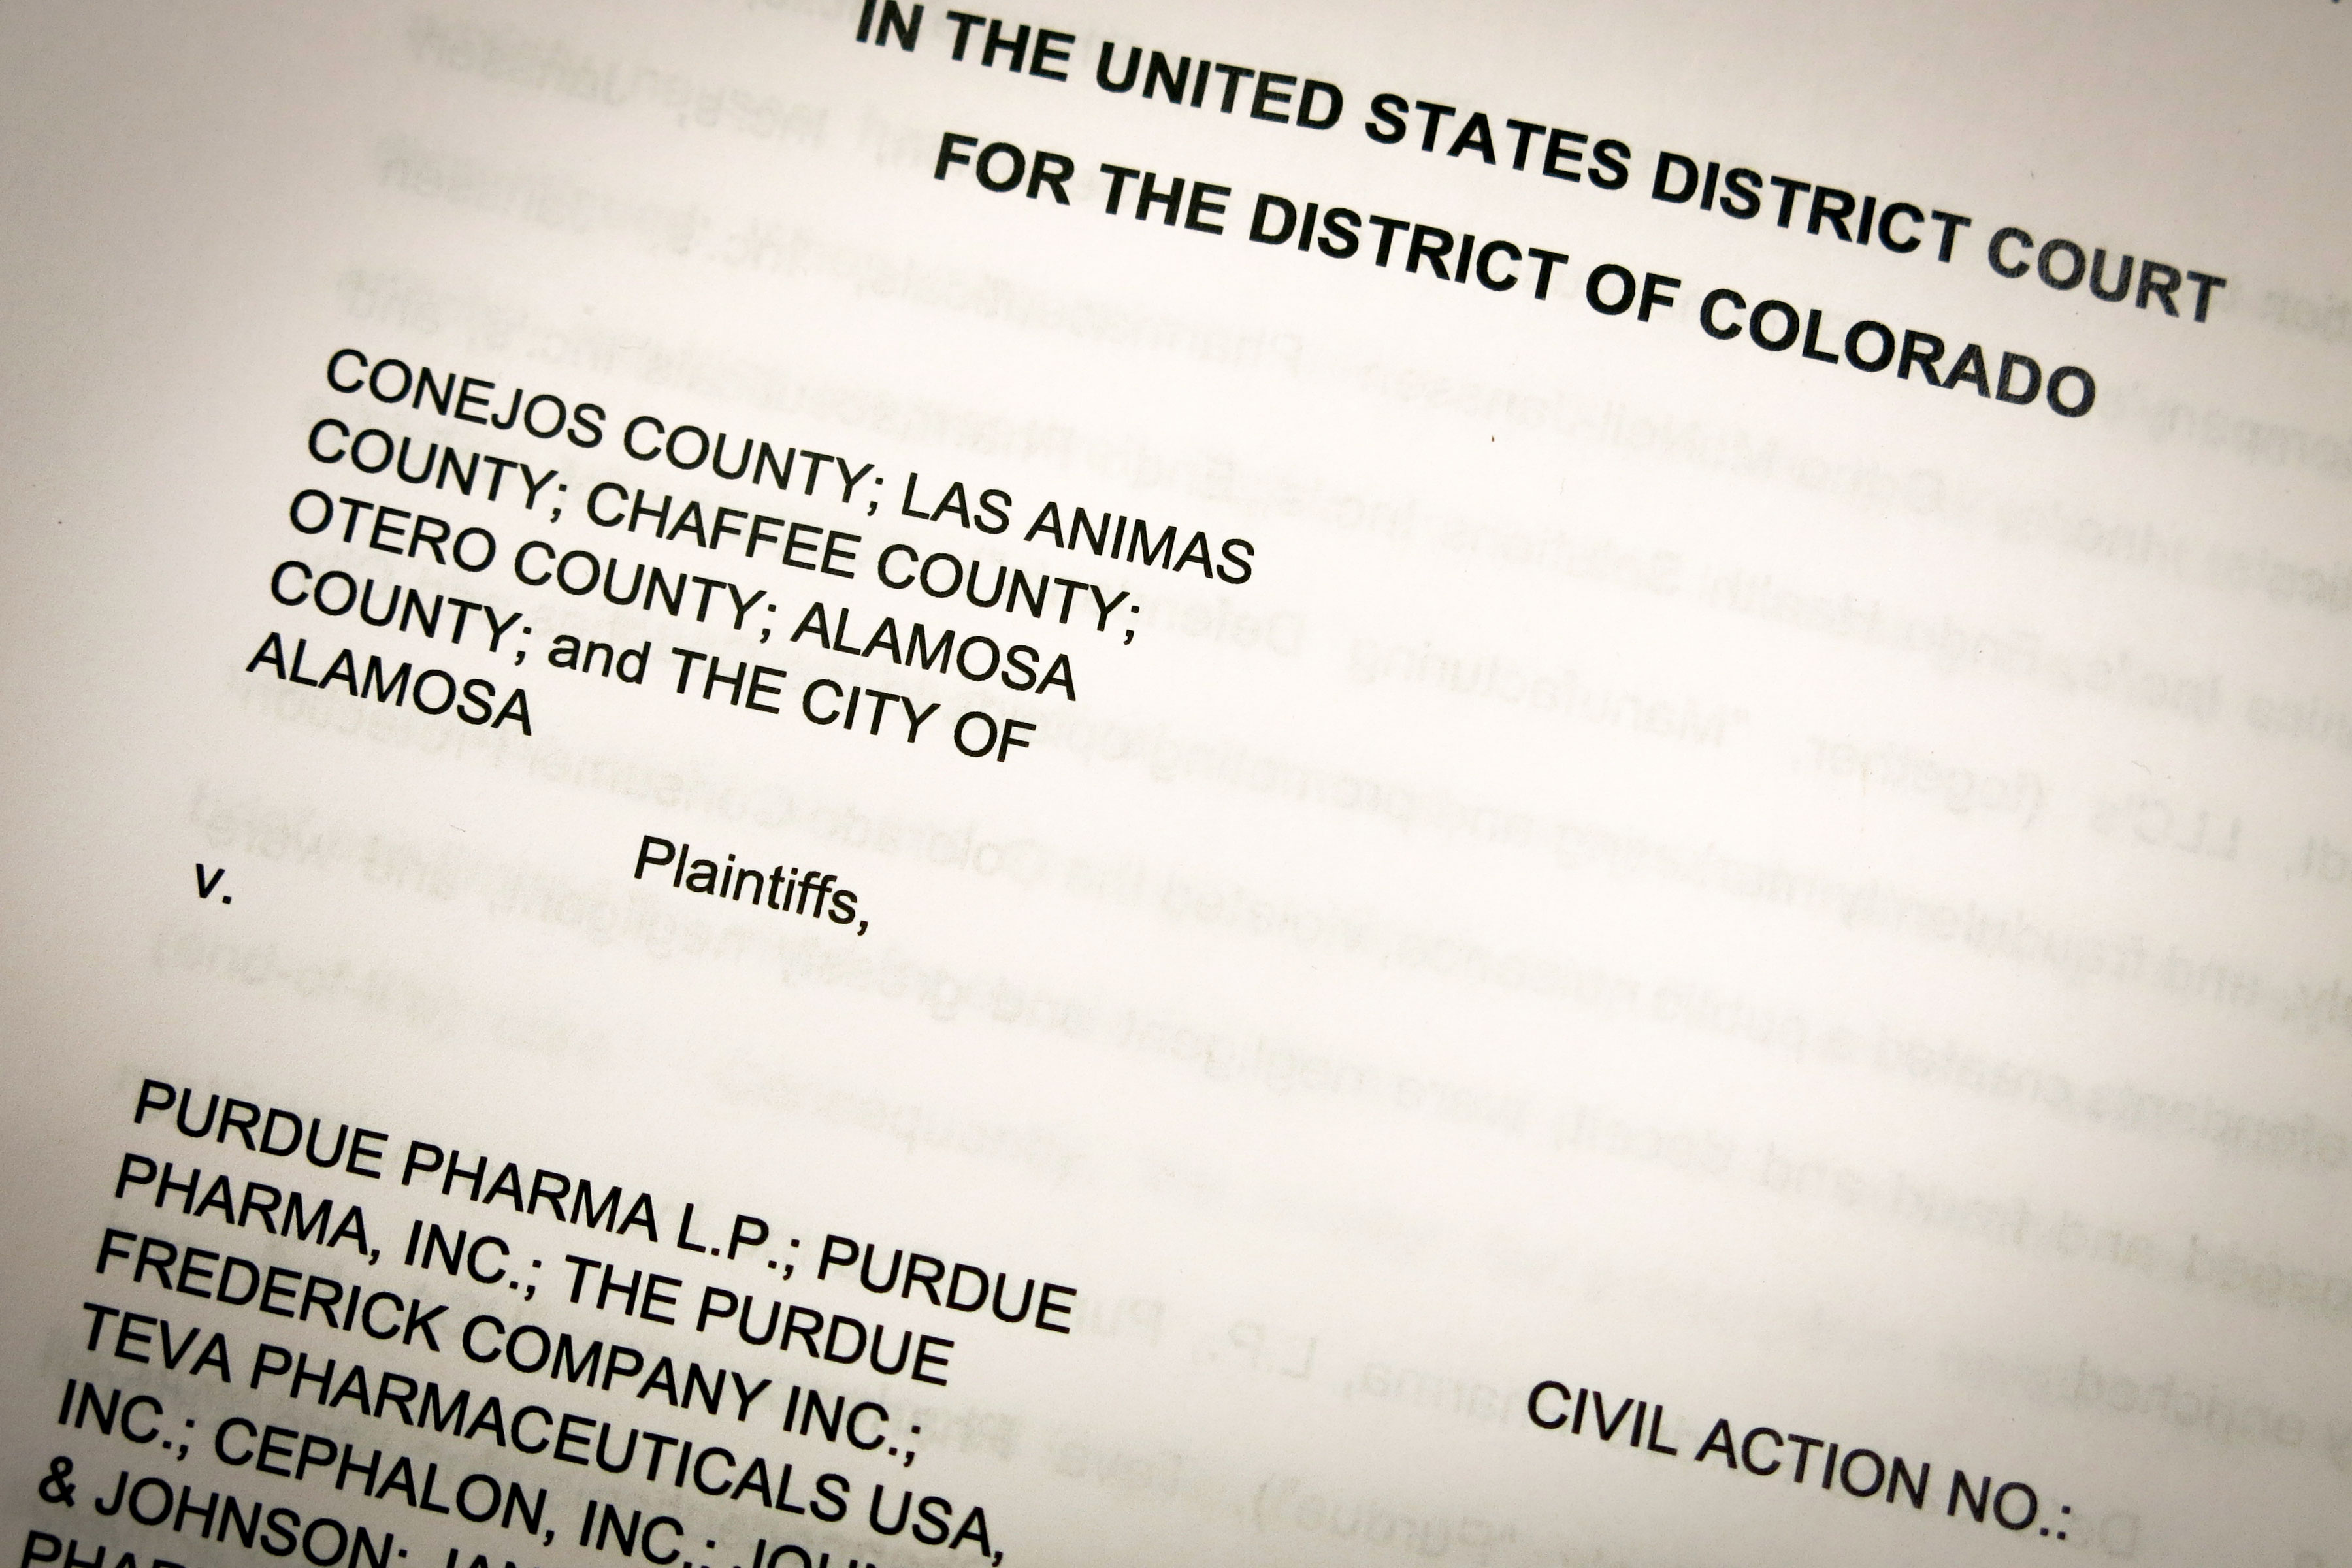 <p>Several southern Colorado counties have already filed suit against pharmaceutical companies as a response to the state's opioid crisis.</p>